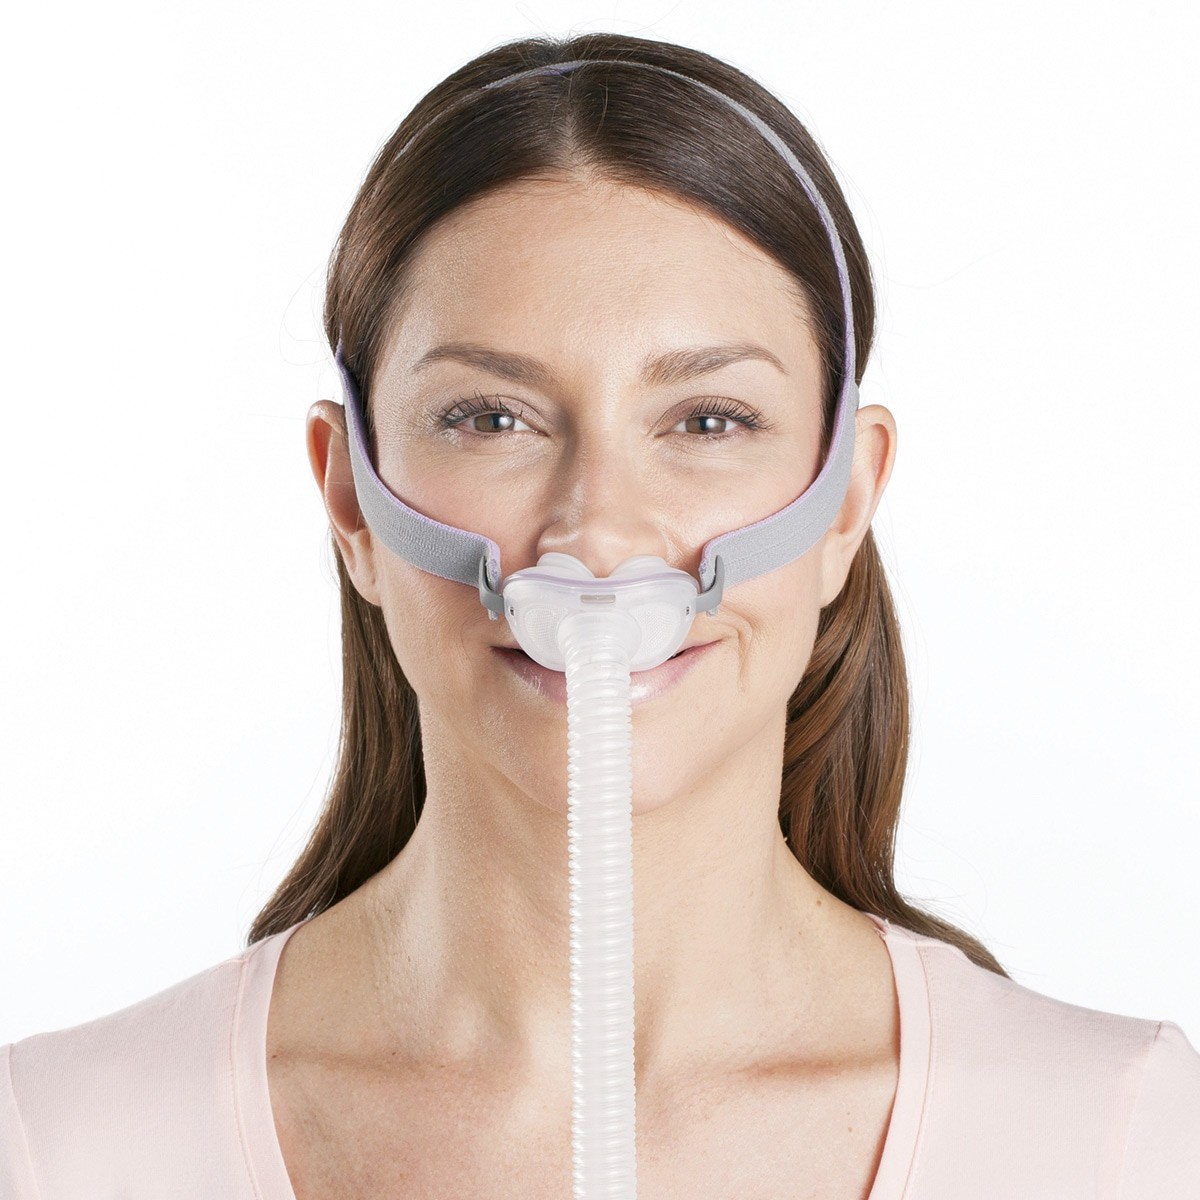 Woman wearing a AirFit P10 Nasal Pillow CPAP Mask with Headgear